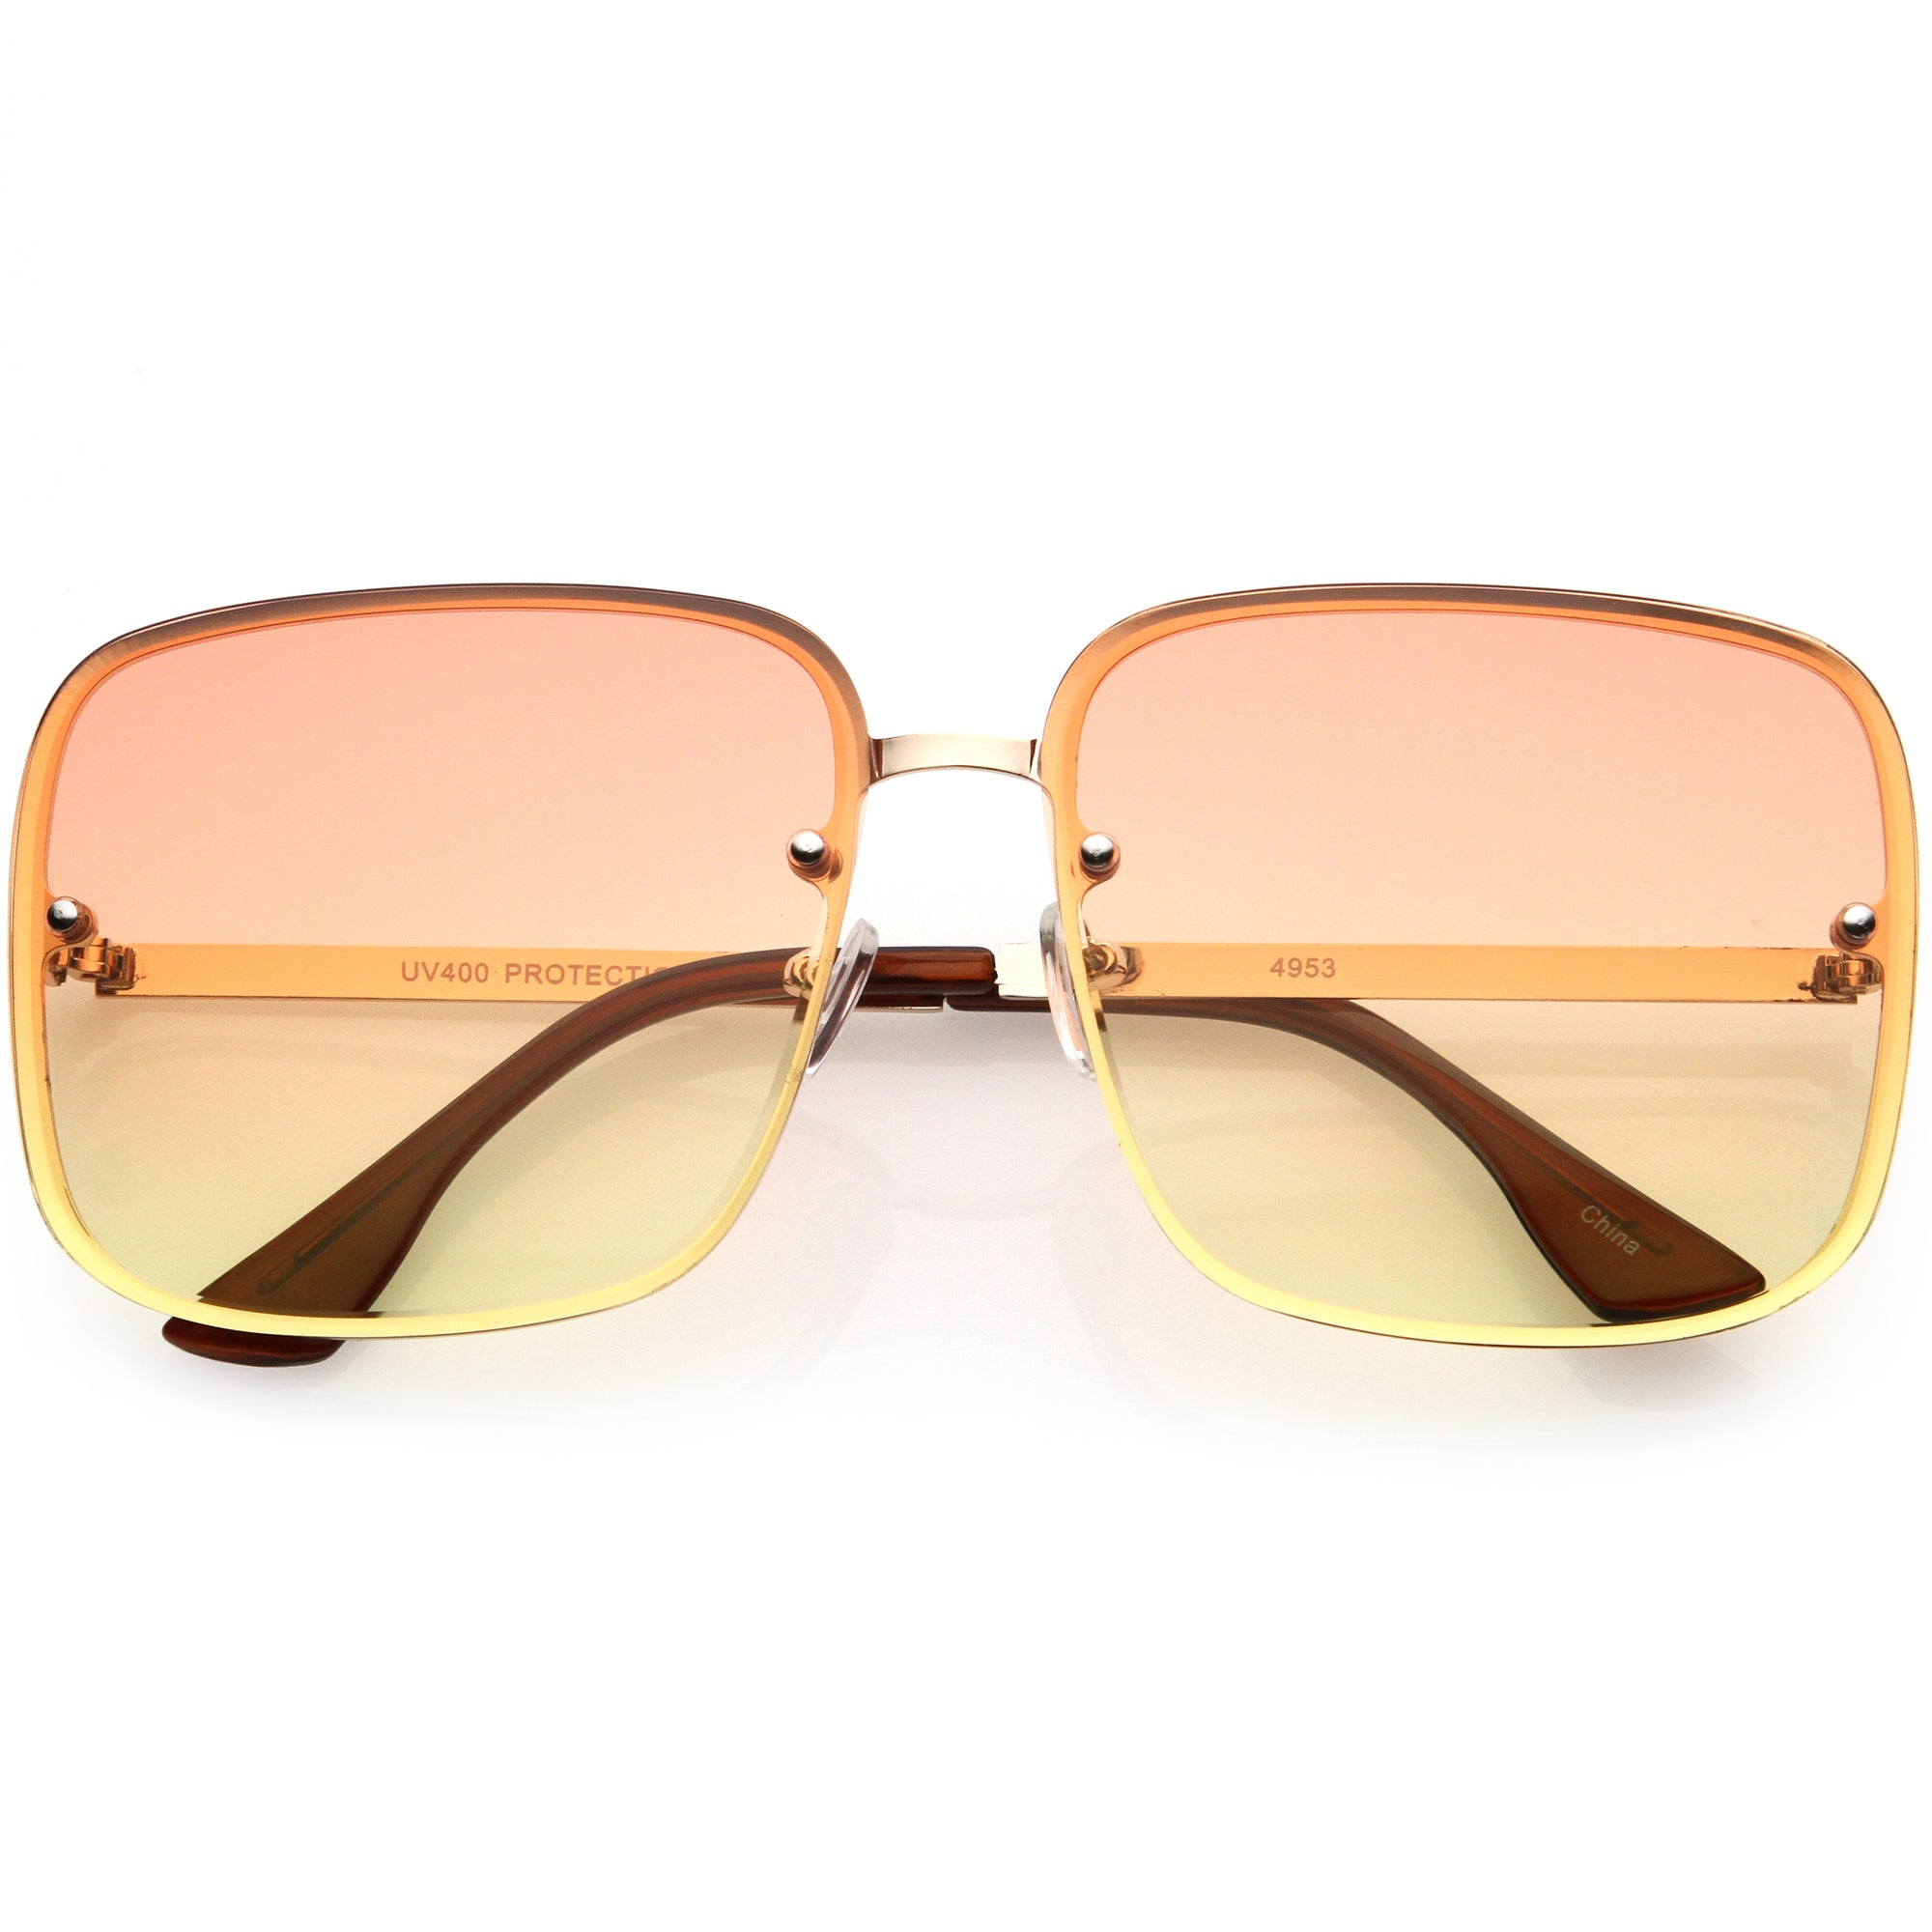 Luxe Rimless Gradient Lens Square Oversize Sunglasses  D103